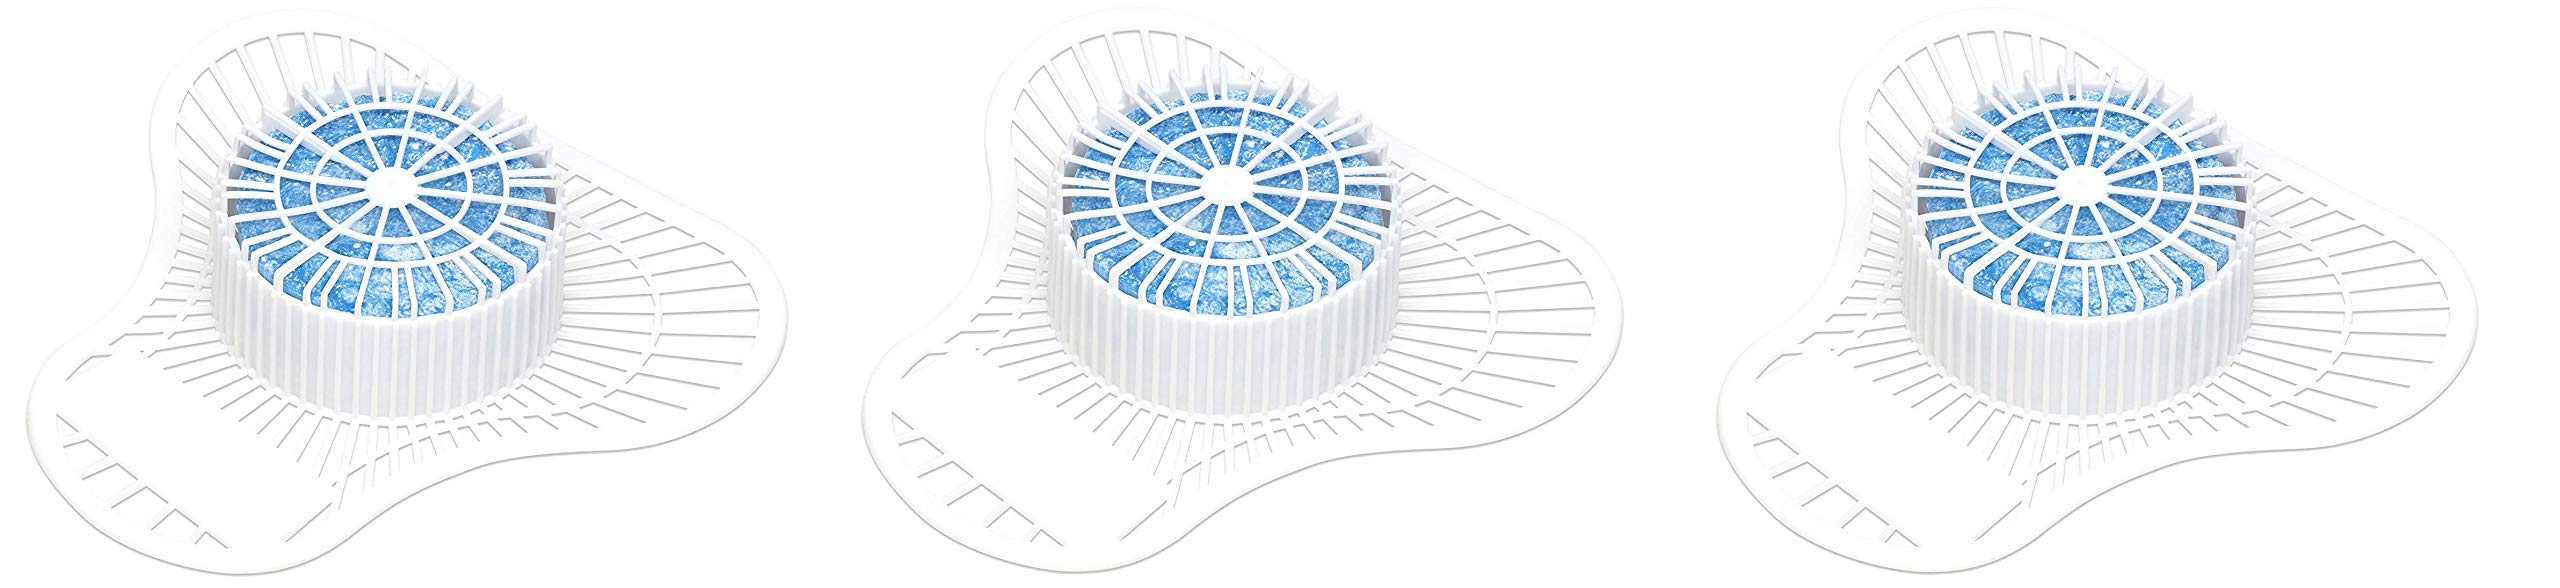 Big D 688 Extra Duty Urinal Screen with Non-Para Block, Mint Fresh Fragrance, 1500 Flushes (Pack of 12) - Ideal for restrooms in offices, schools, restaurants, hotels, stores (Pack of 3)